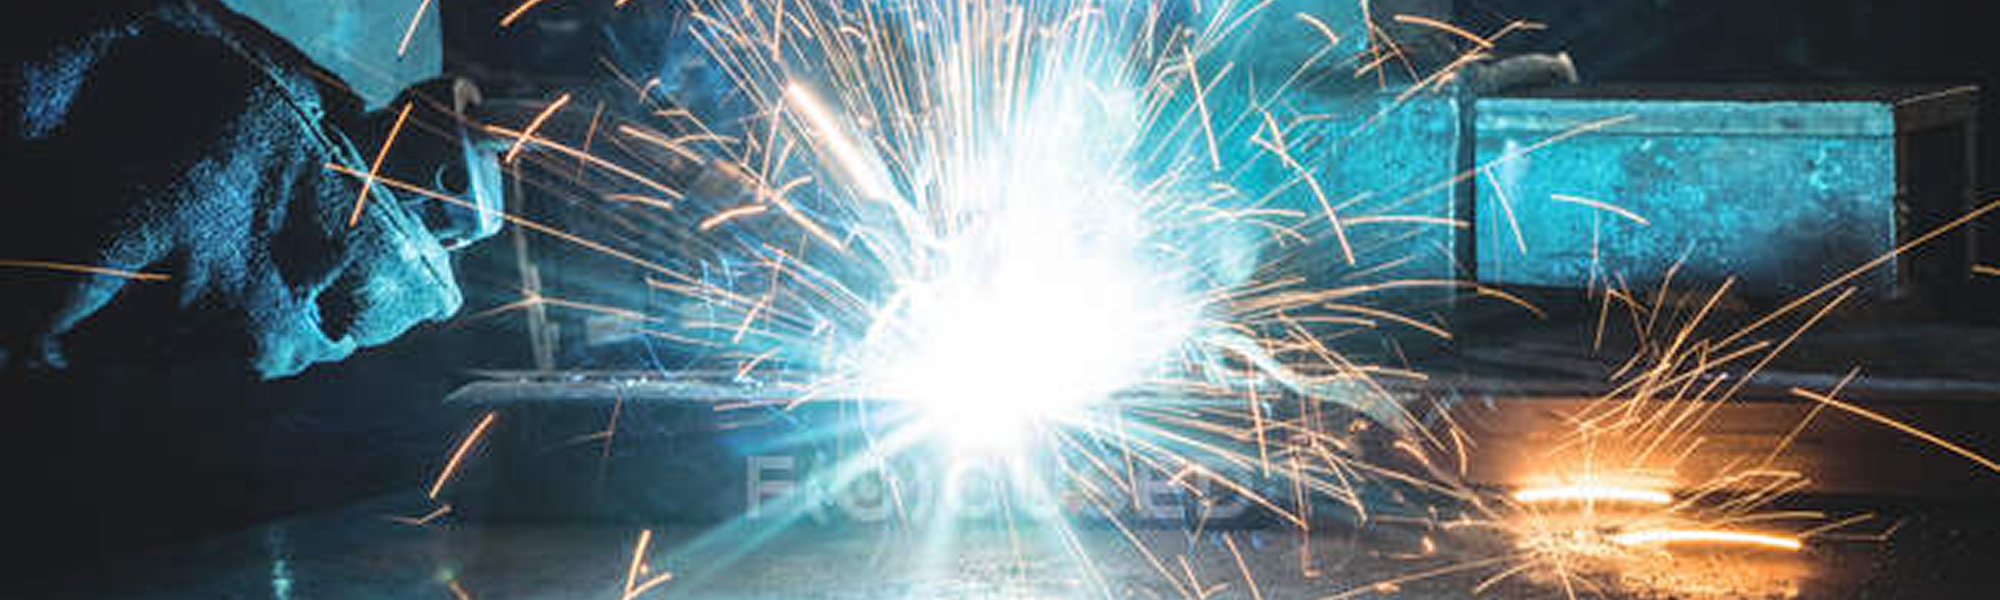 Photius - A Paradigm Shift in Welding Technology